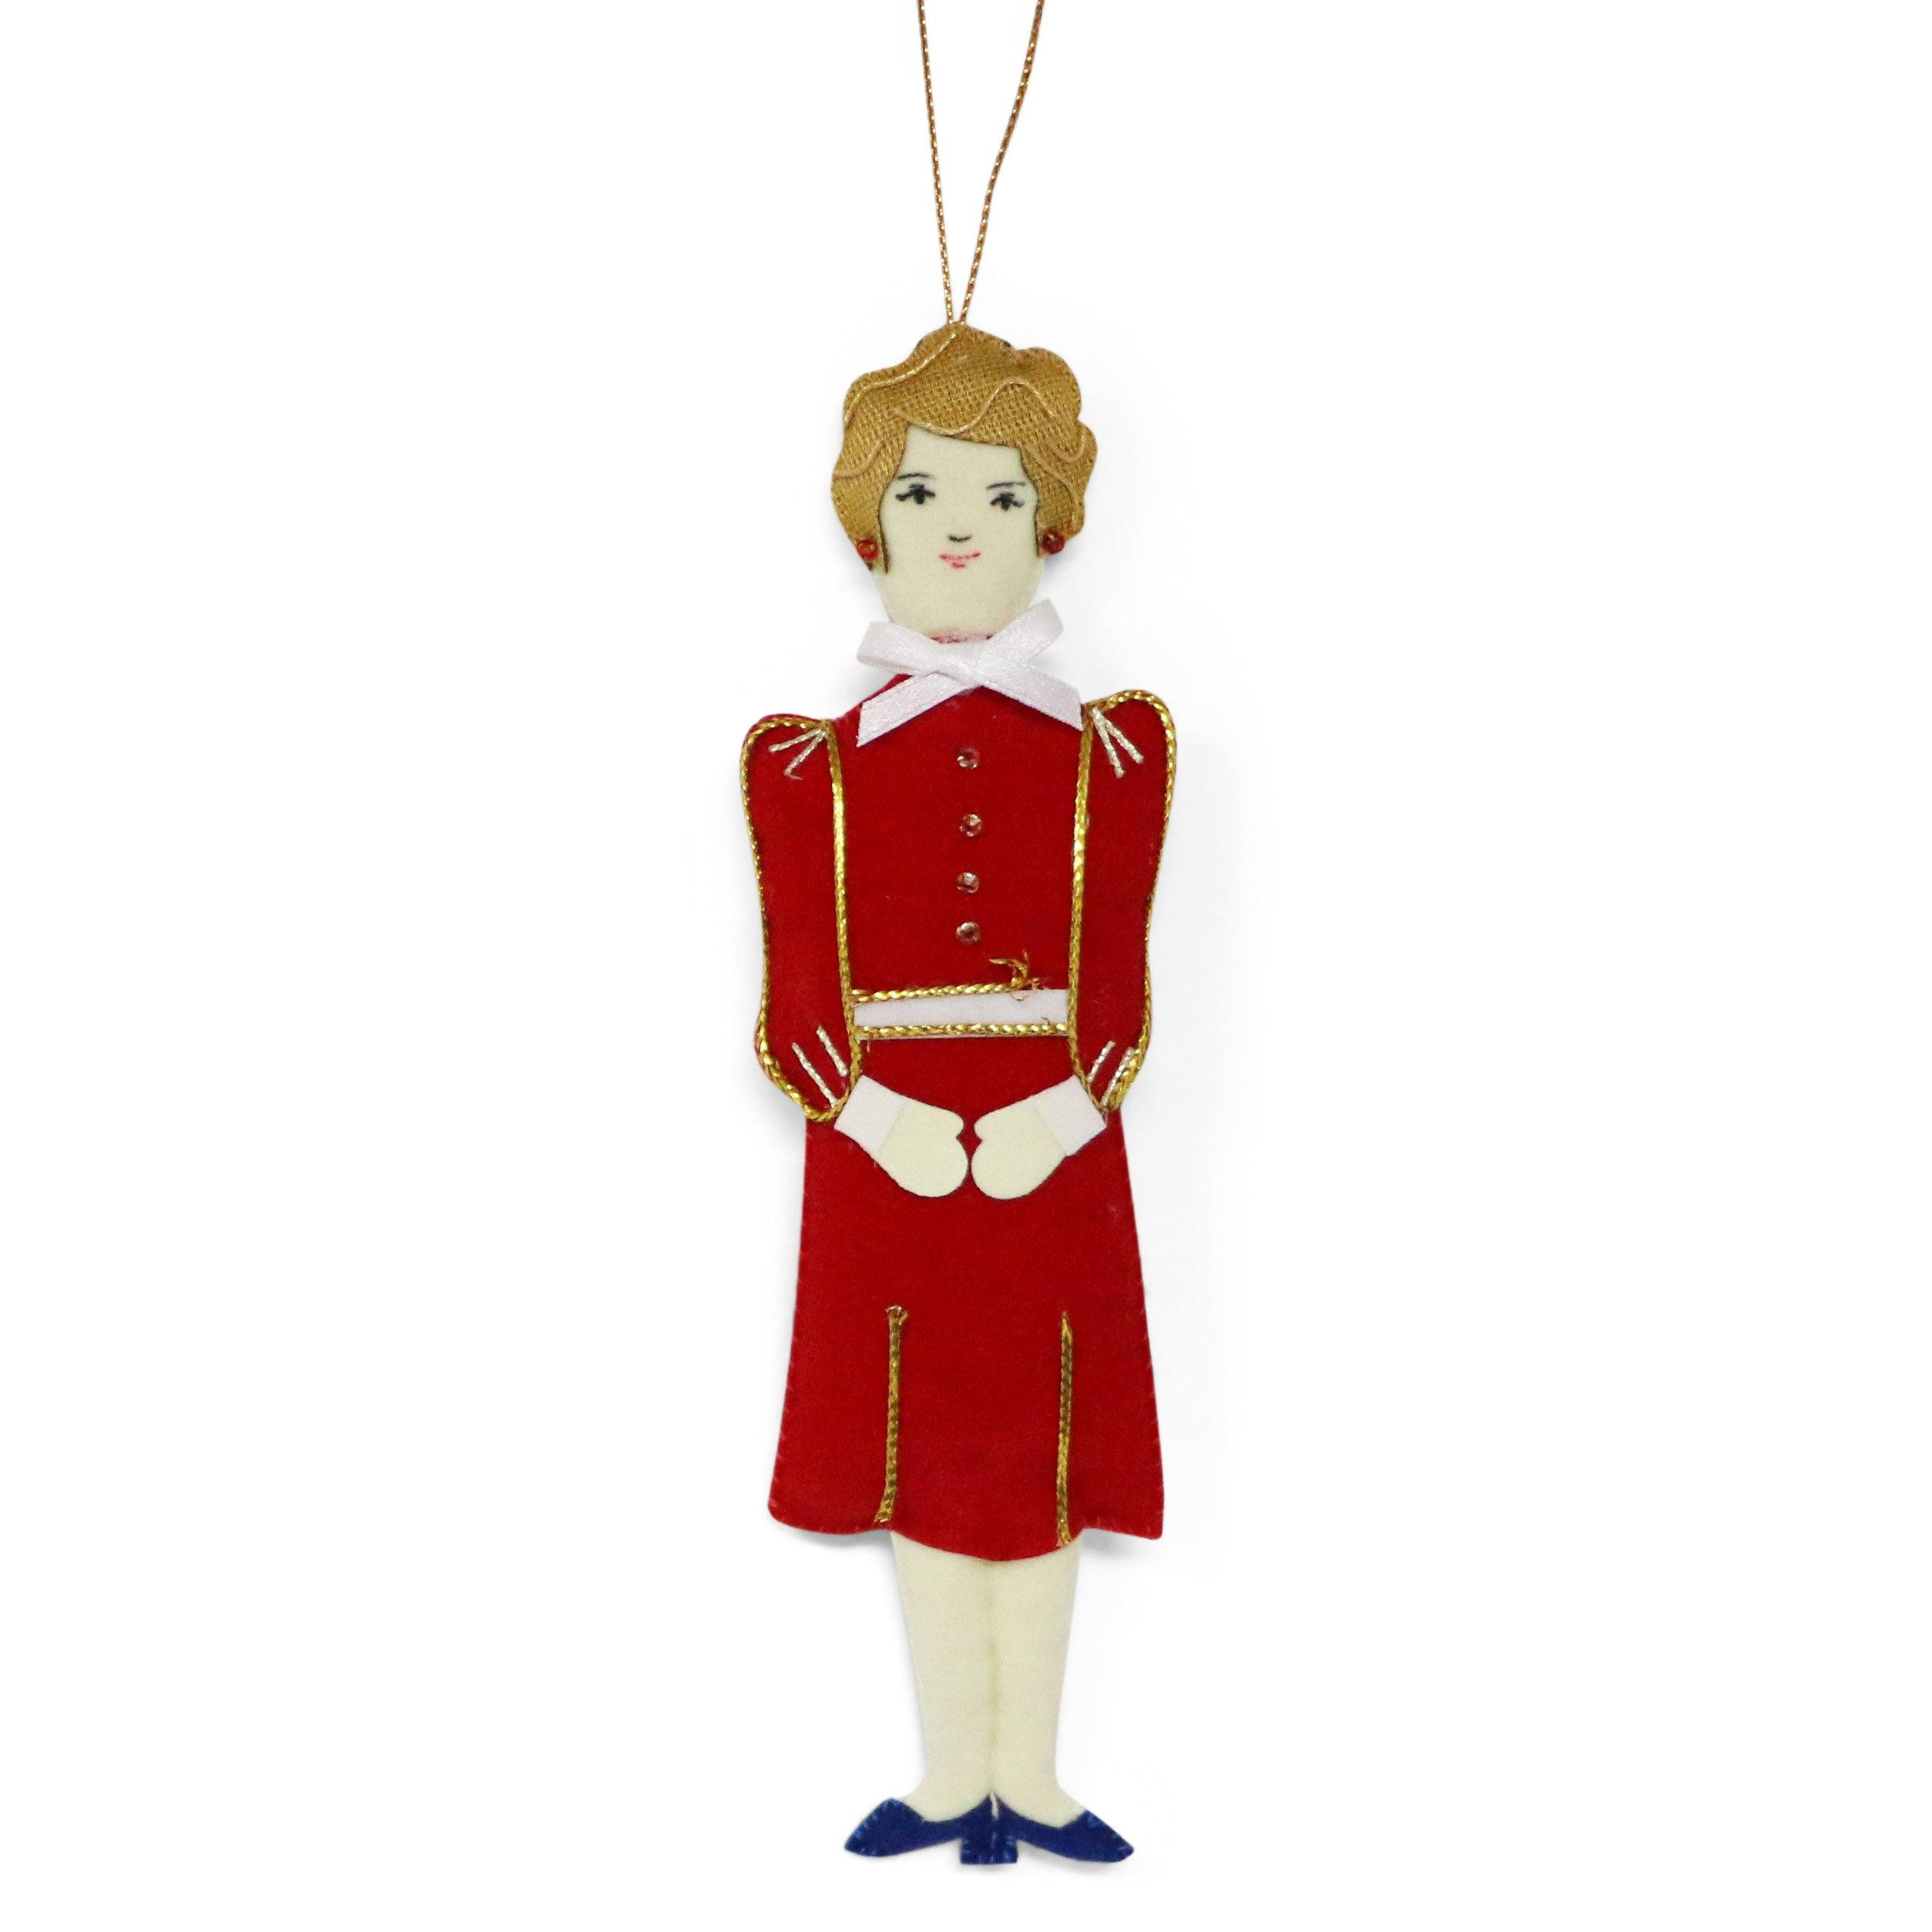 Nancy Reagan Ornament